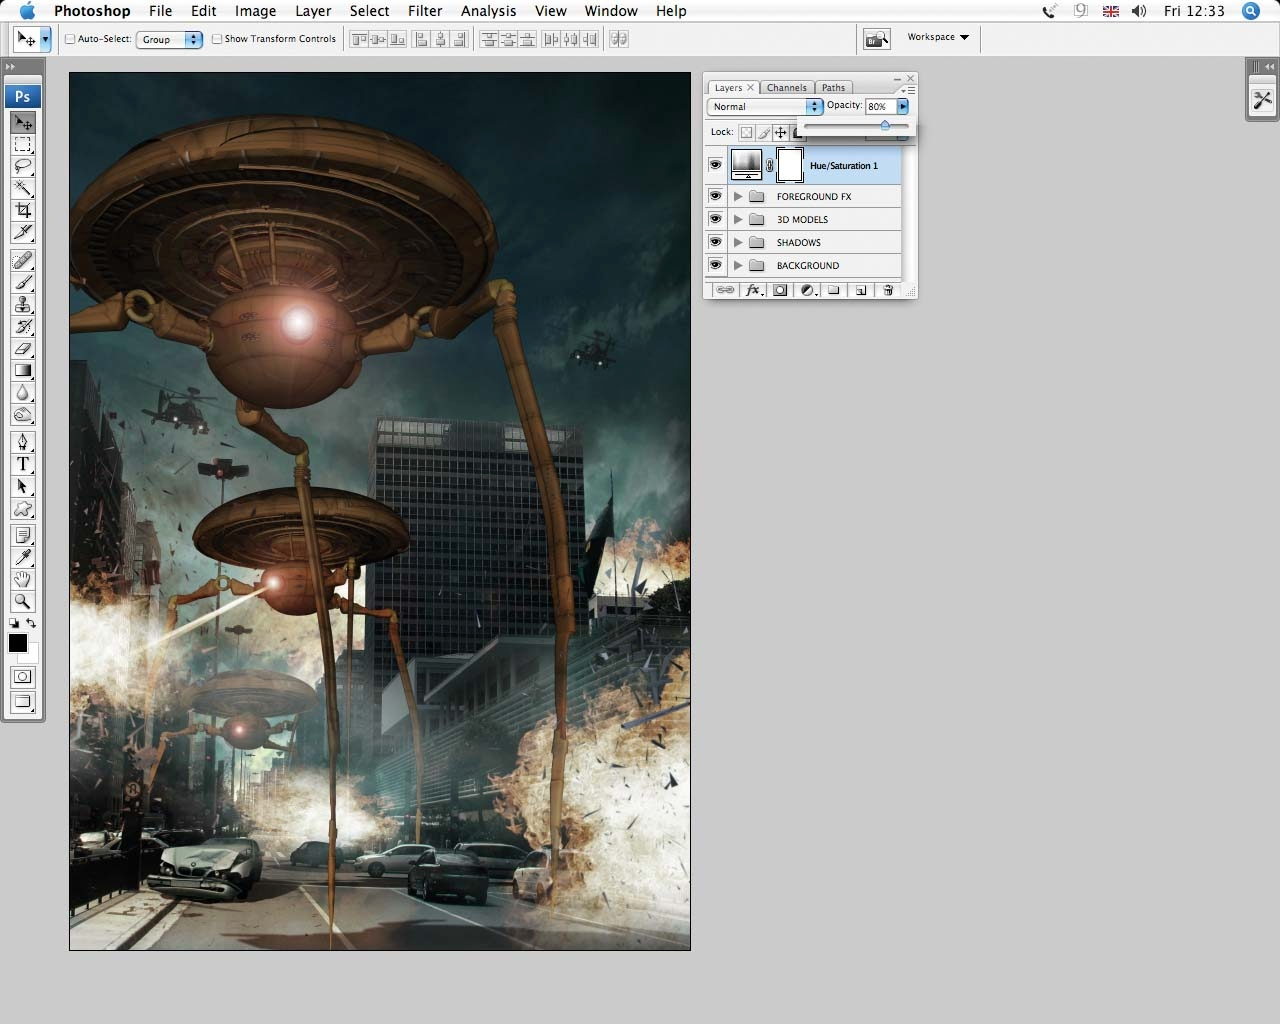 Adobe photoshop cs3 extended complete full crack free